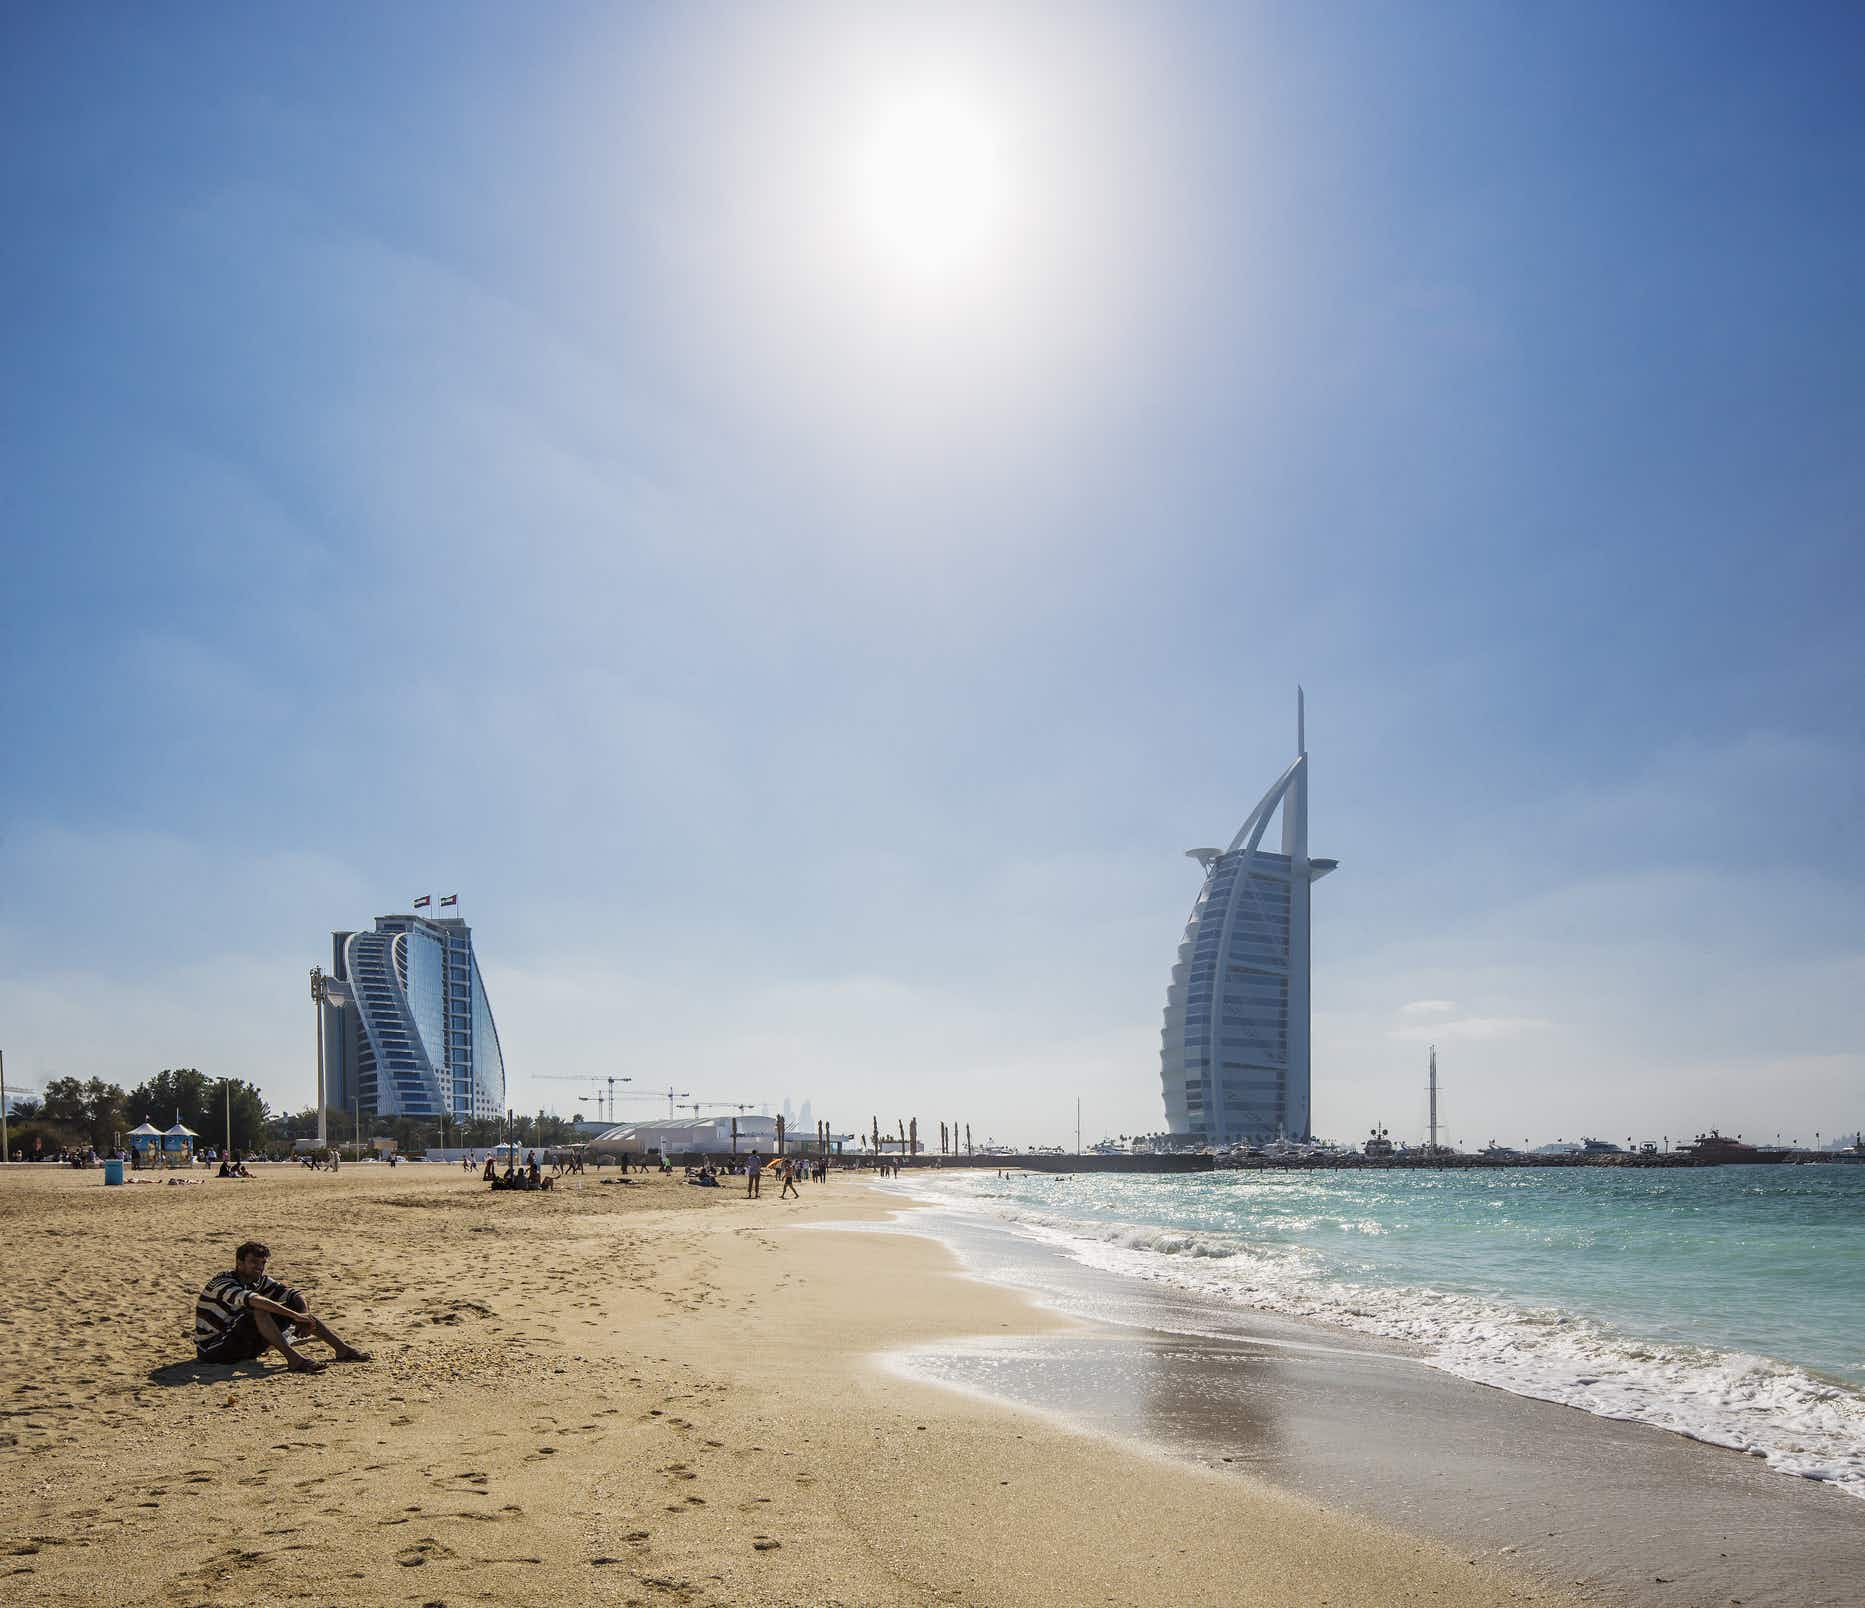 Outlawed moonlight swims may soon be a possibility thanks to a new invention on Dubai beaches